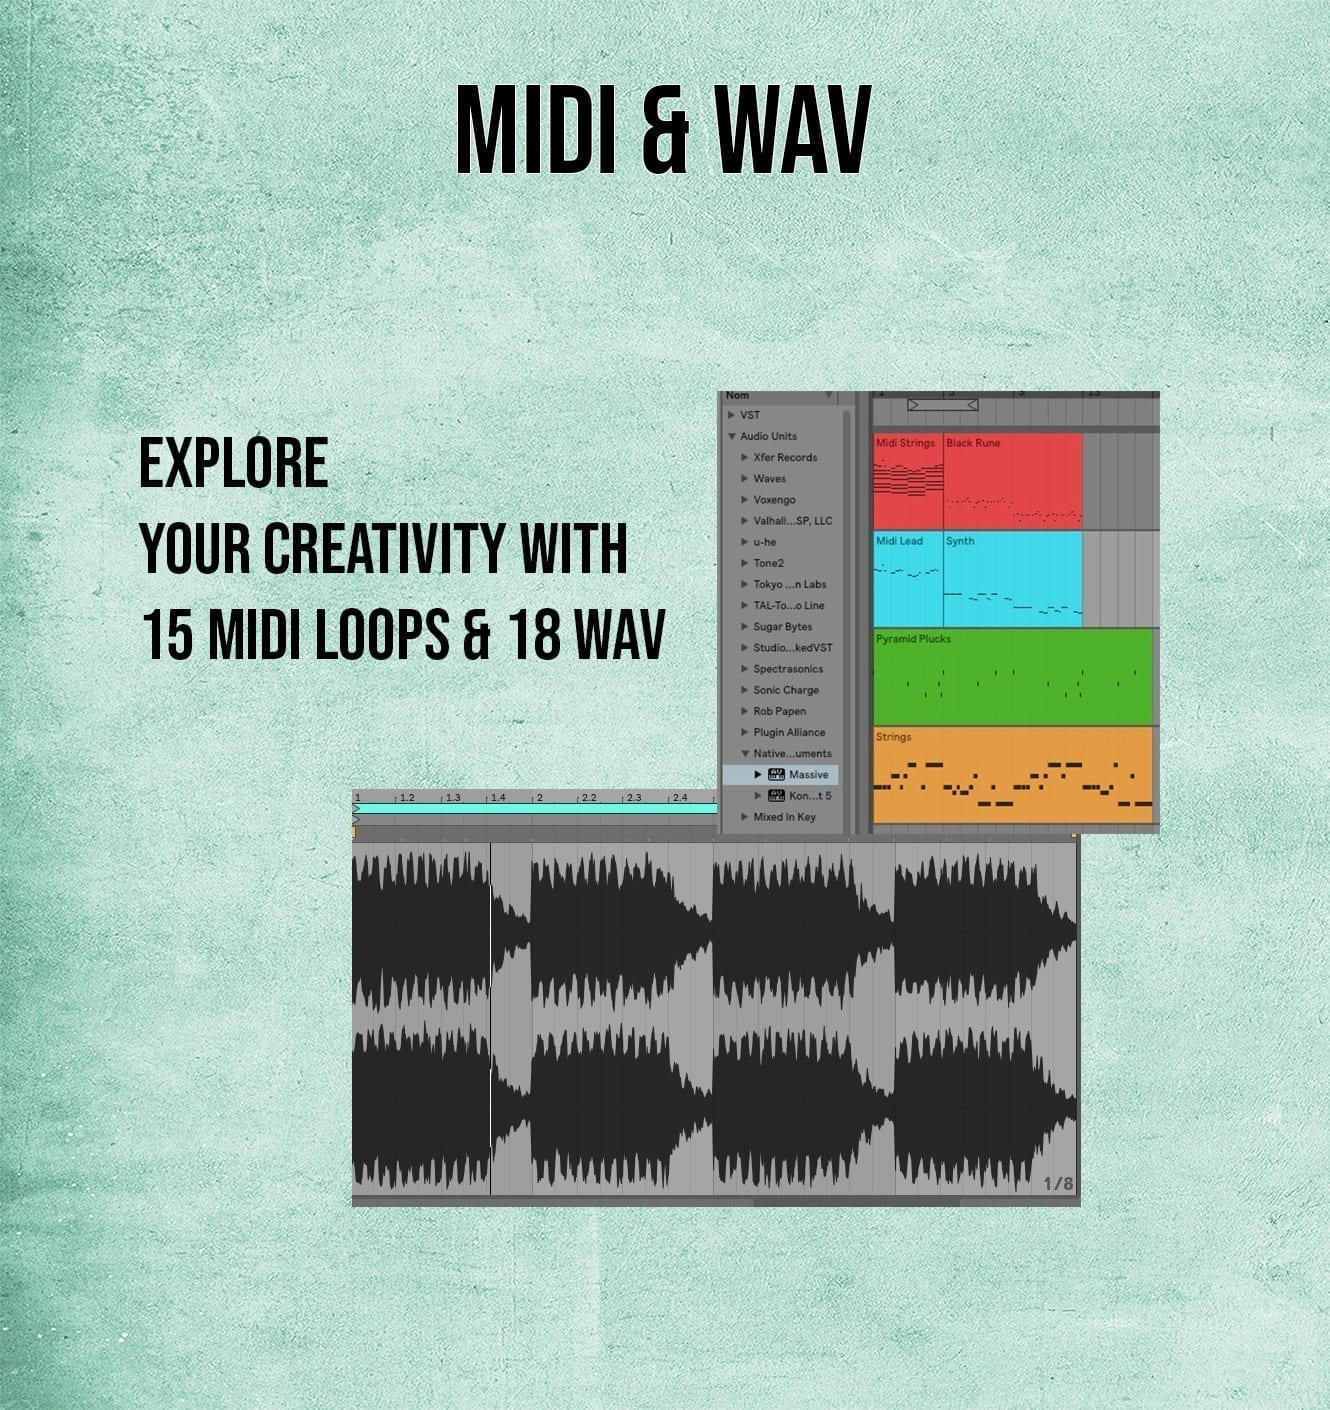 15 midi files and 18 midi patterns